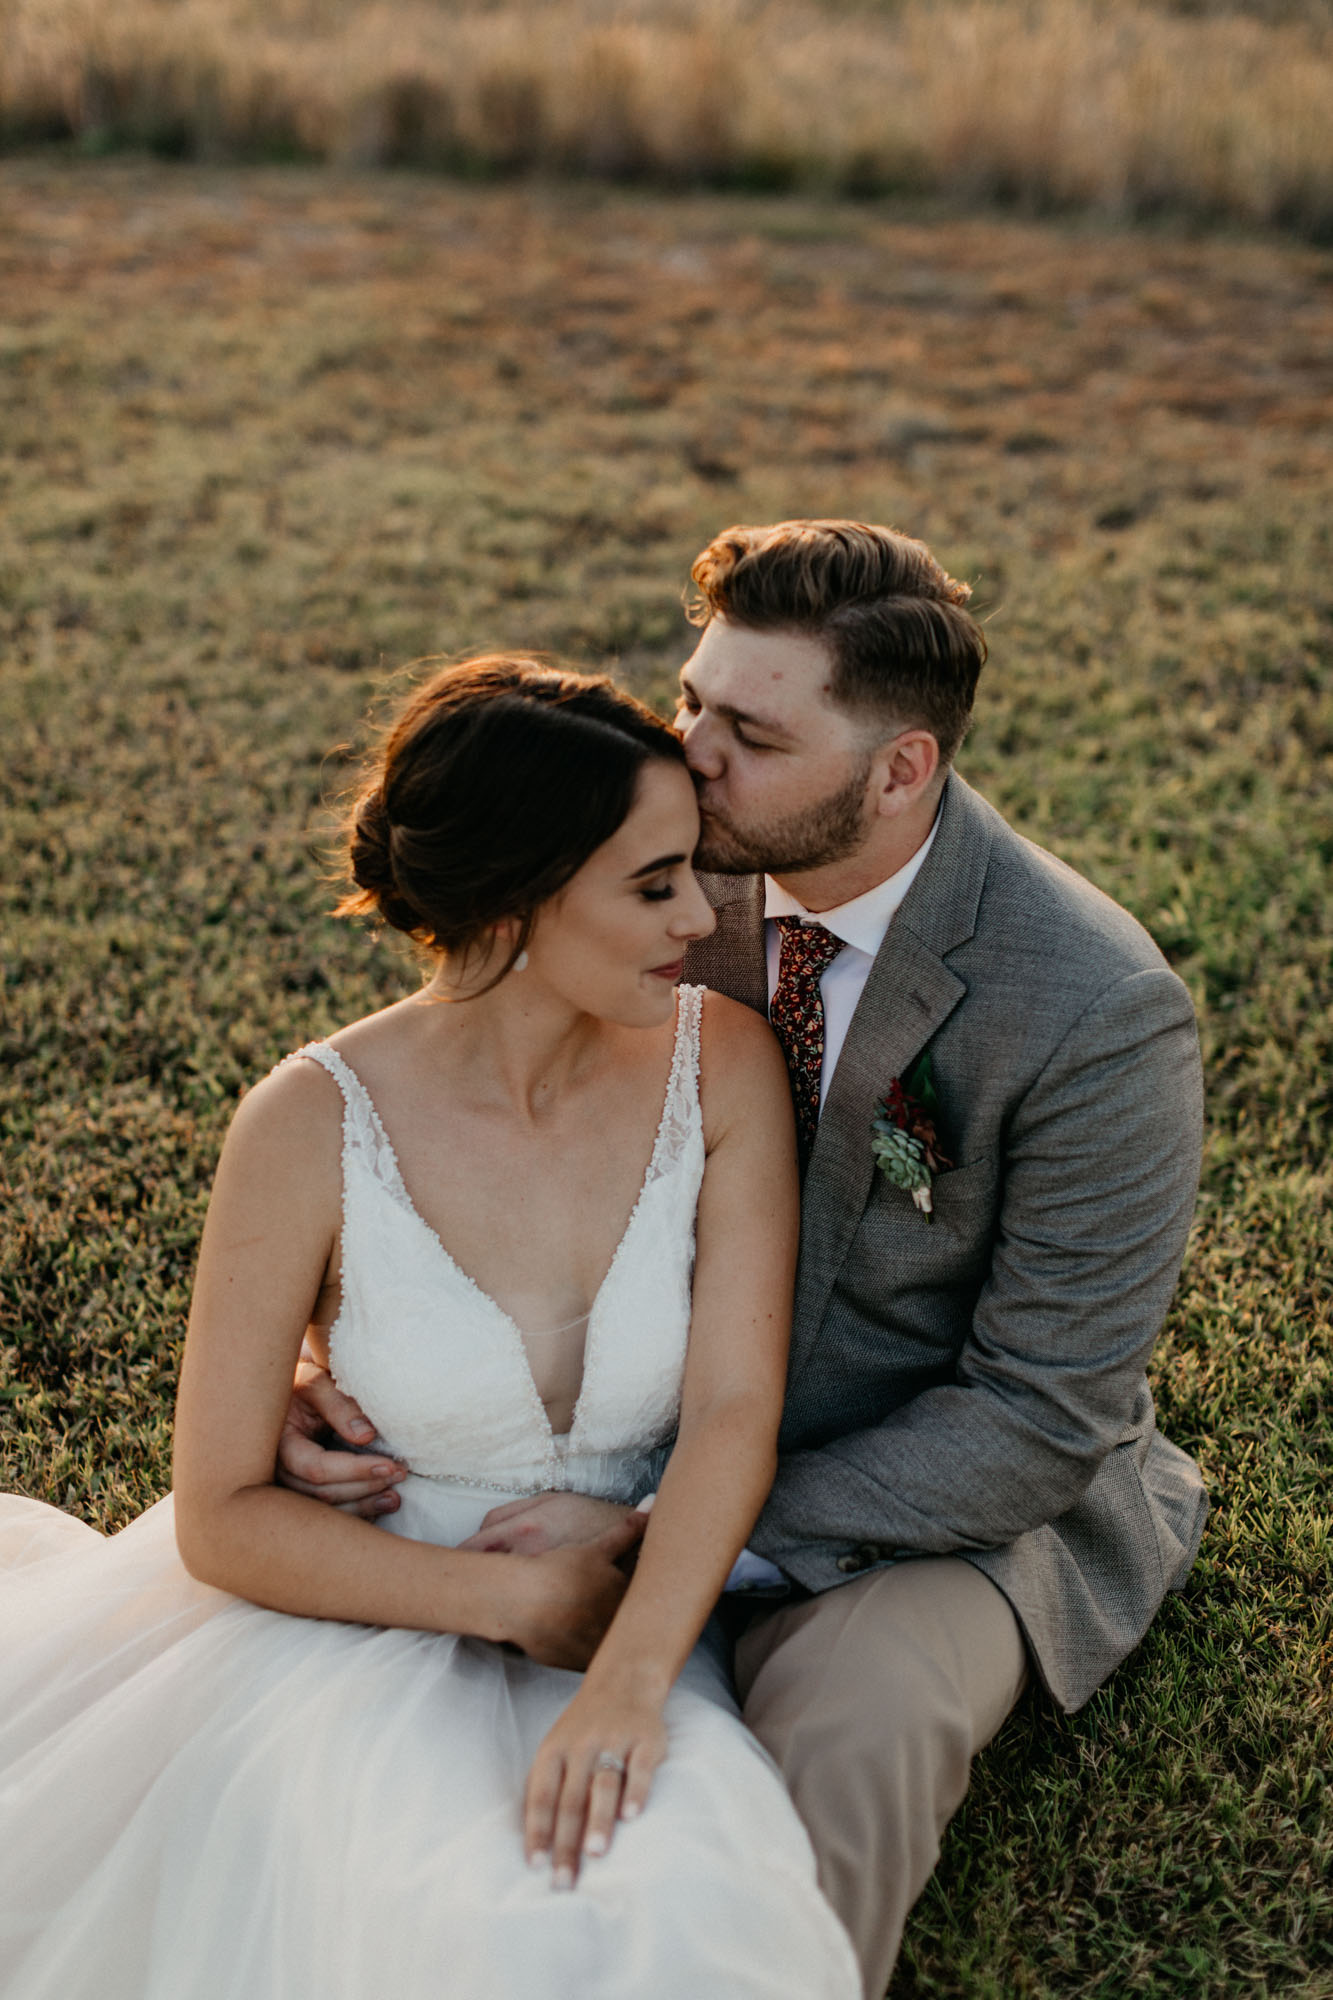 Golden hour photographer takes pictures of bride and groom after their North Texas Wedding Ceremony